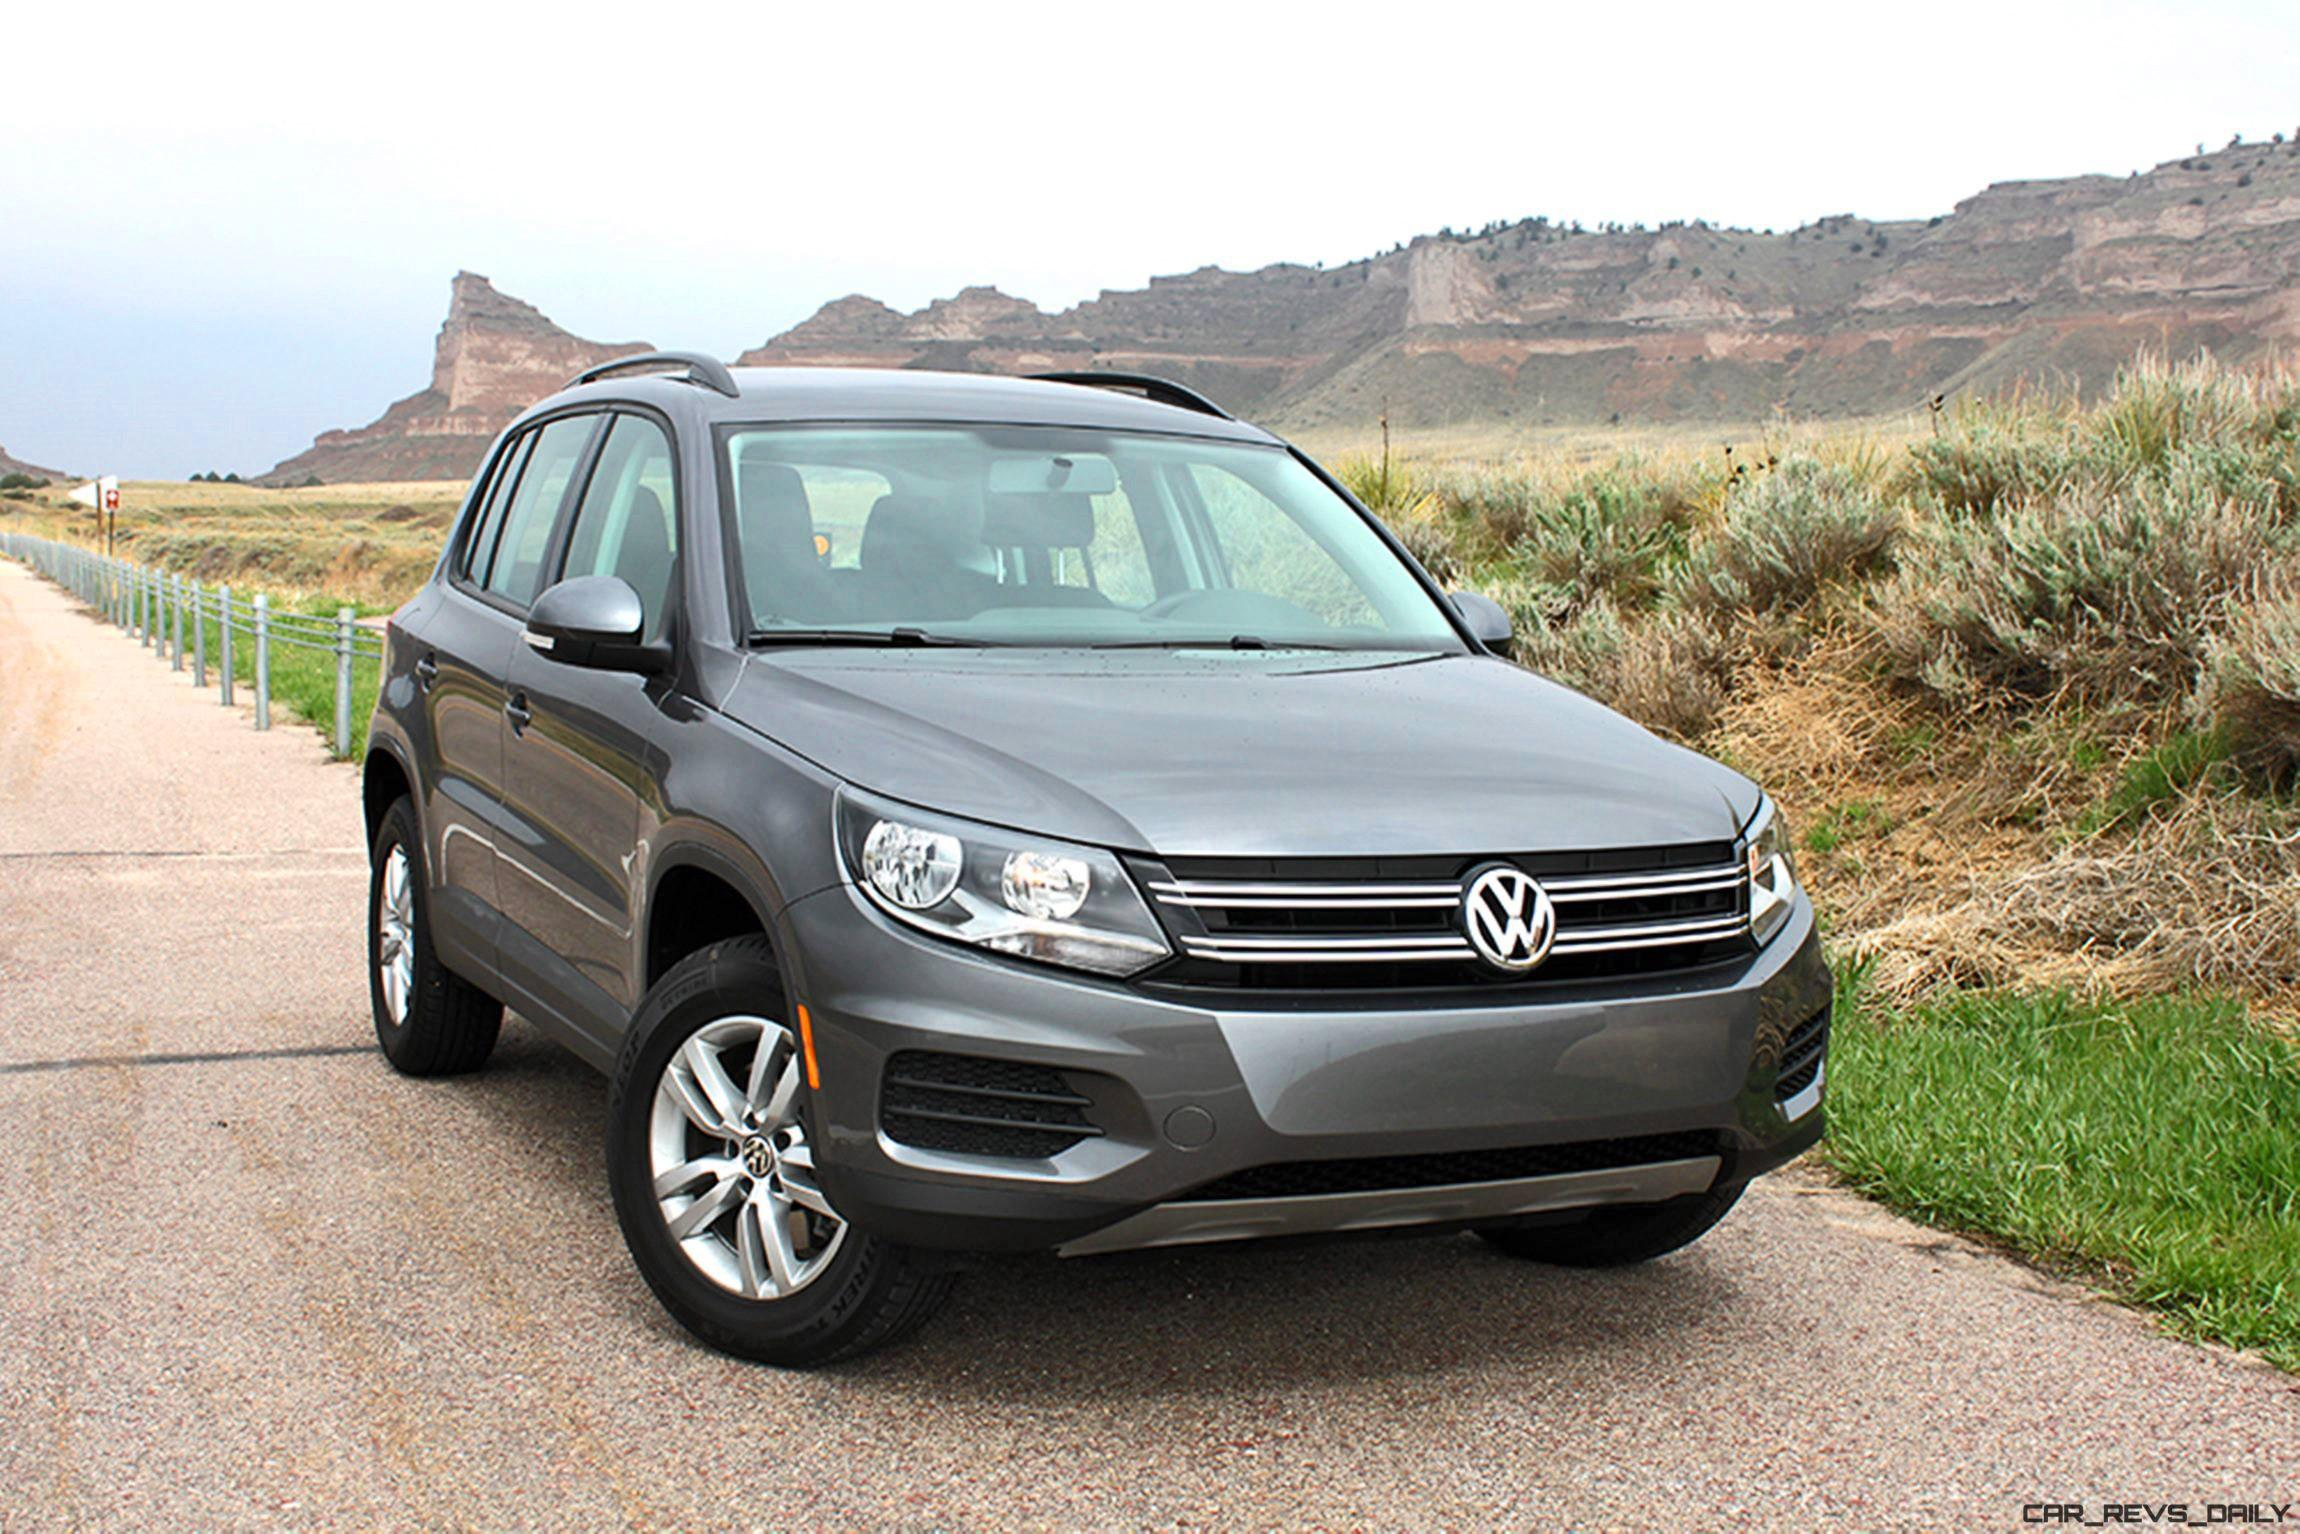 2016 volkswagen tiguan sel 4motion review by tim esterdahl. Black Bedroom Furniture Sets. Home Design Ideas